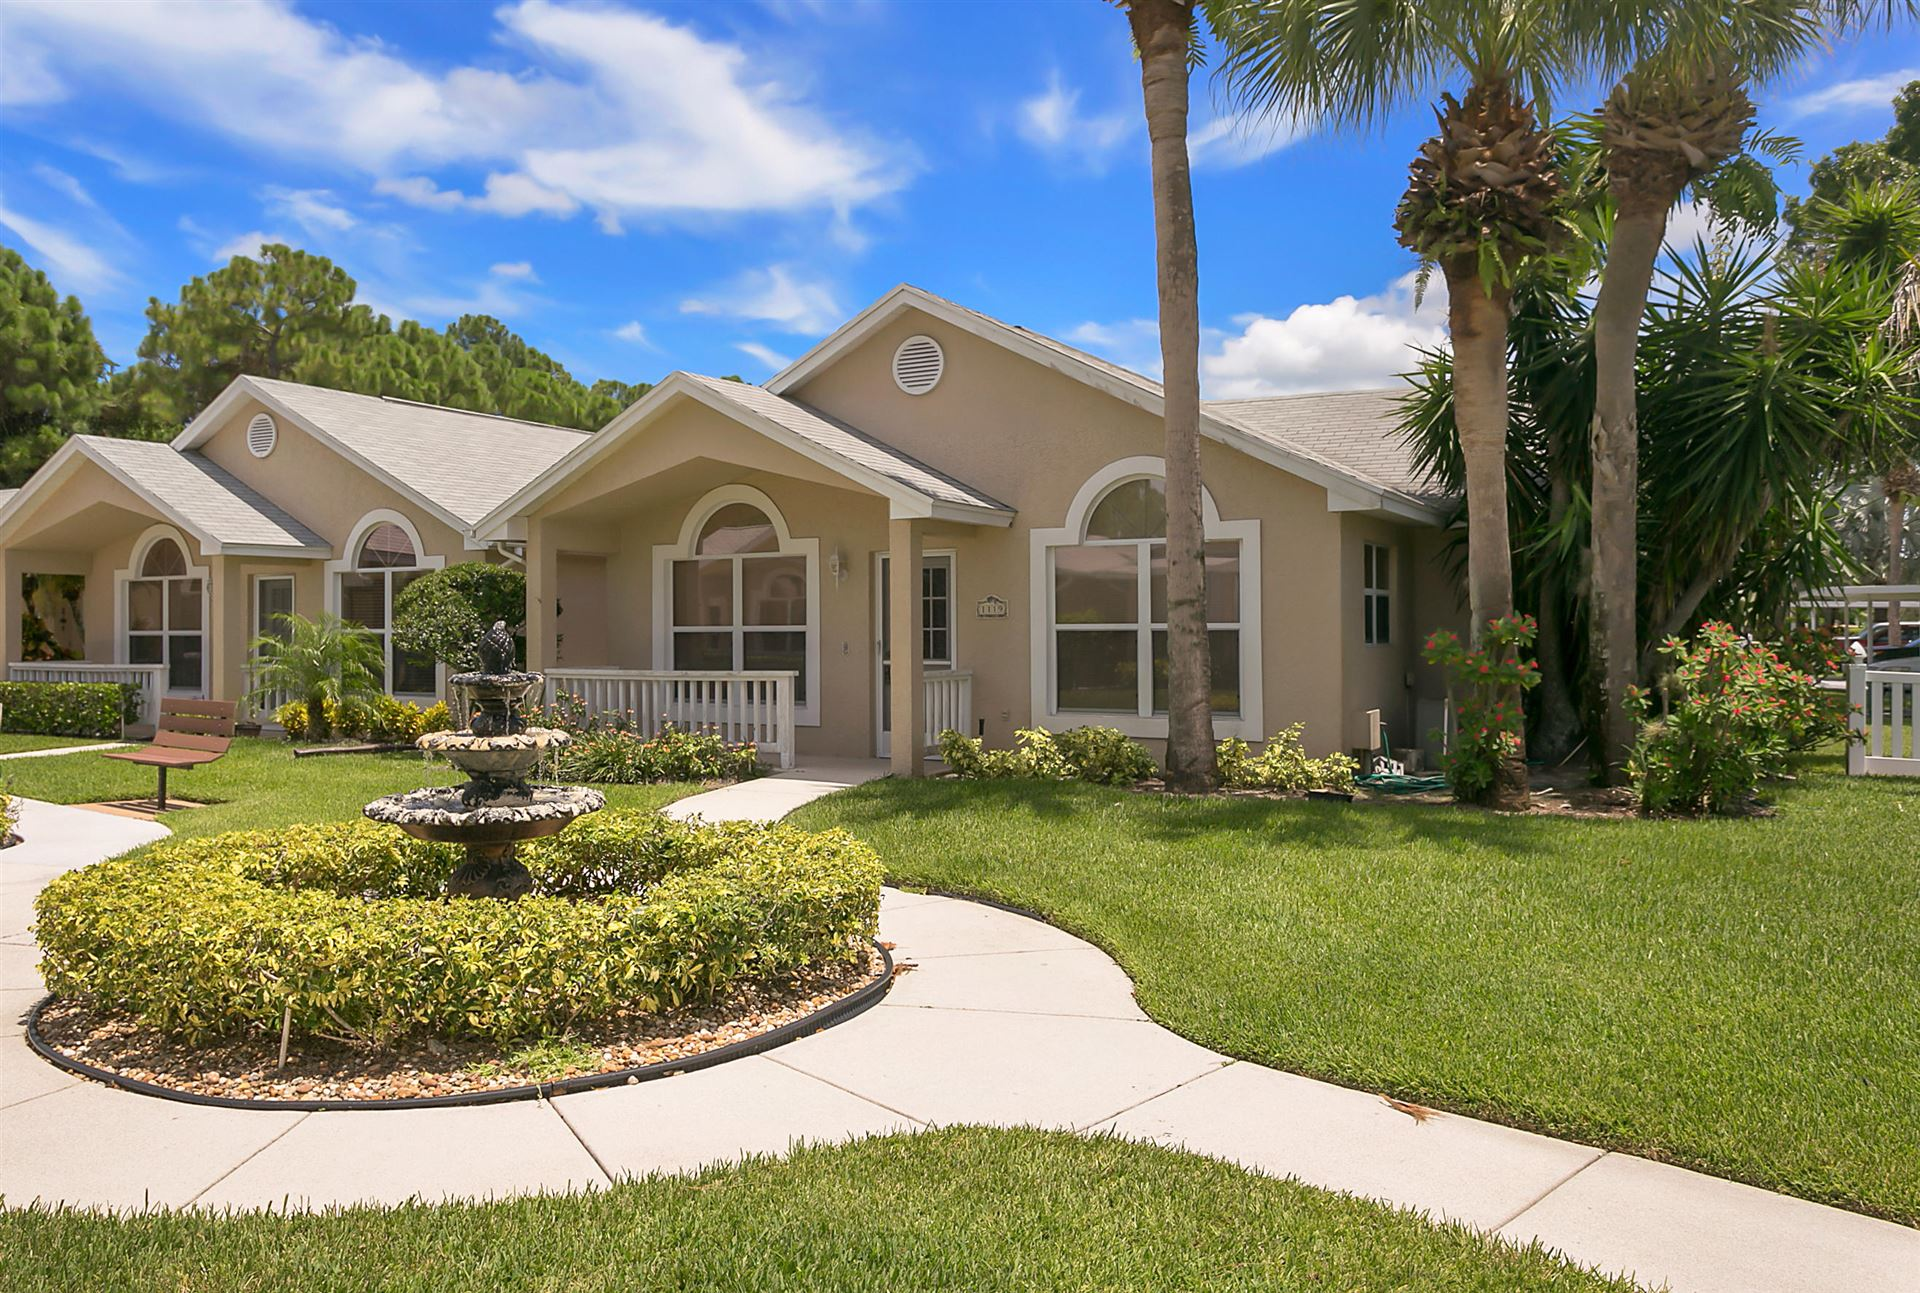 1119 NW Lombardy Drive, Port Saint Lucie, FL 34986 - #: RX-10644398